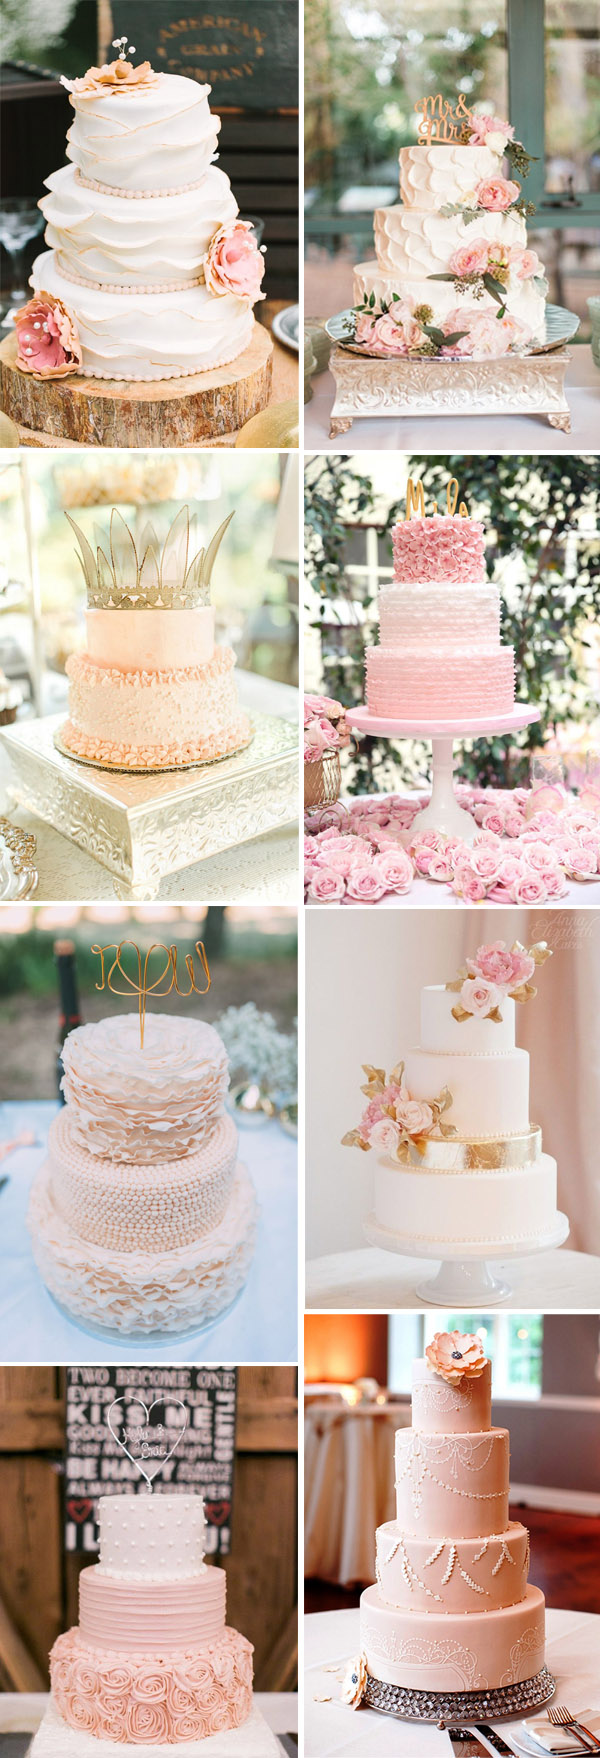 28 gorgeous pink wedding cake ideas